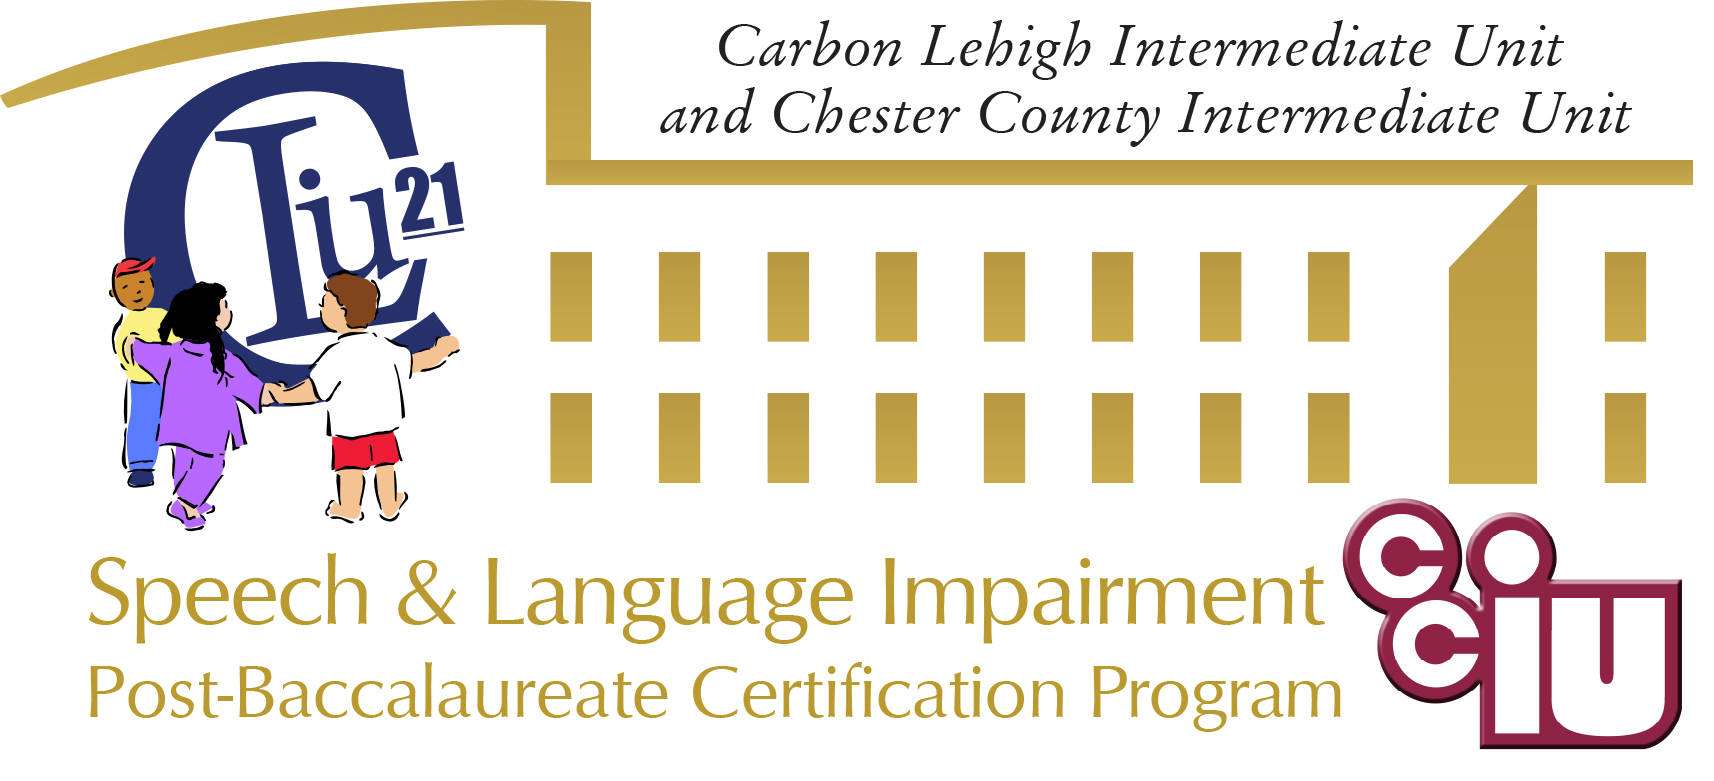 Speech and Language Impairment Certification Program Logo